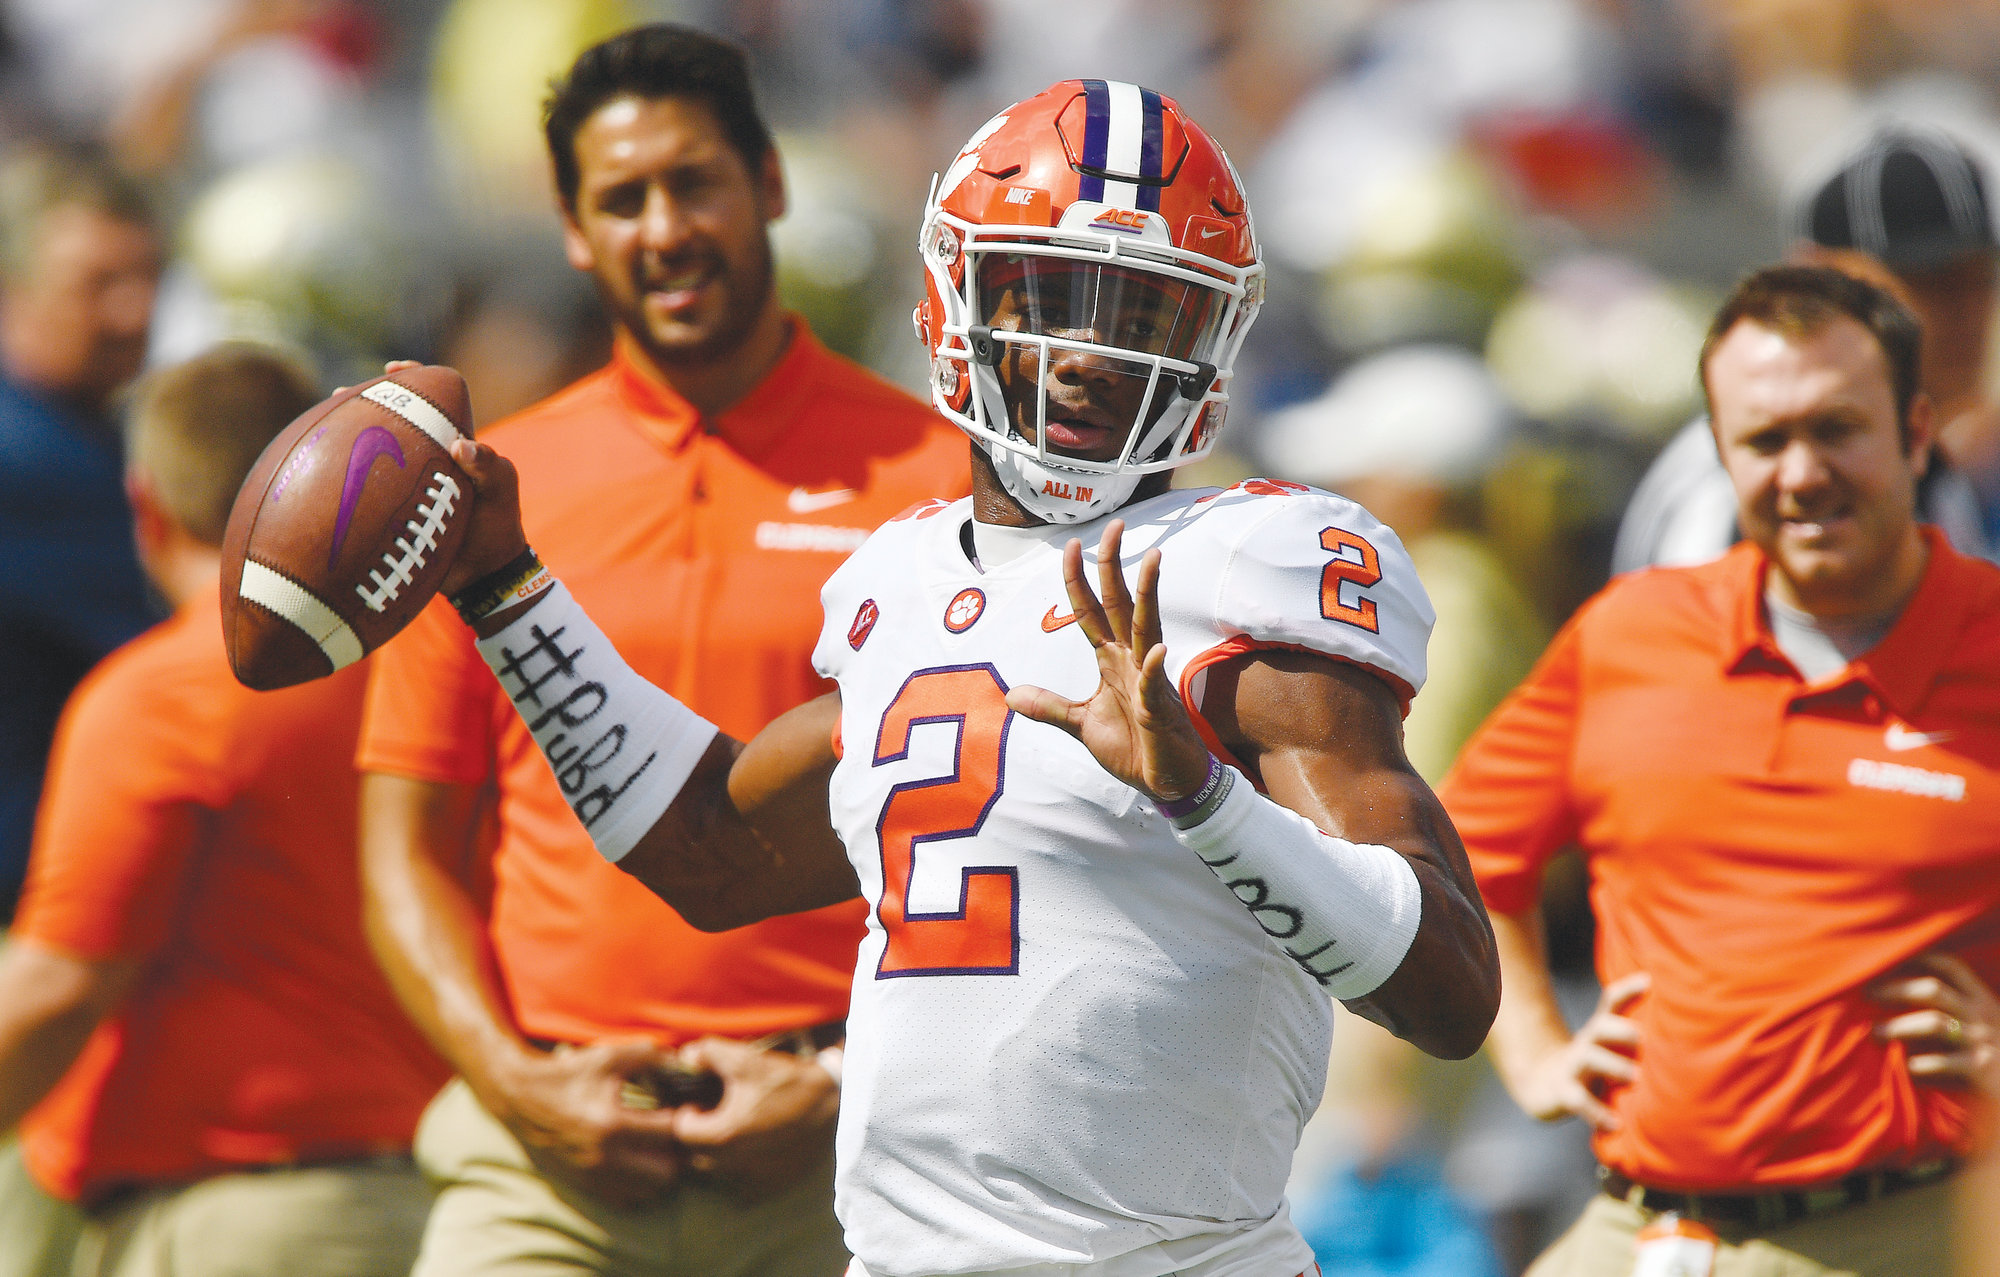 Clemson quarterback Kelly Bryant (2) warms up before the start of  the Tigers' game against Georgia Tech on Saturday in Atlanta. Bryant  lost the starting job to true freshman Trevor Lawrence on Monday and has decided to transfer to another school.